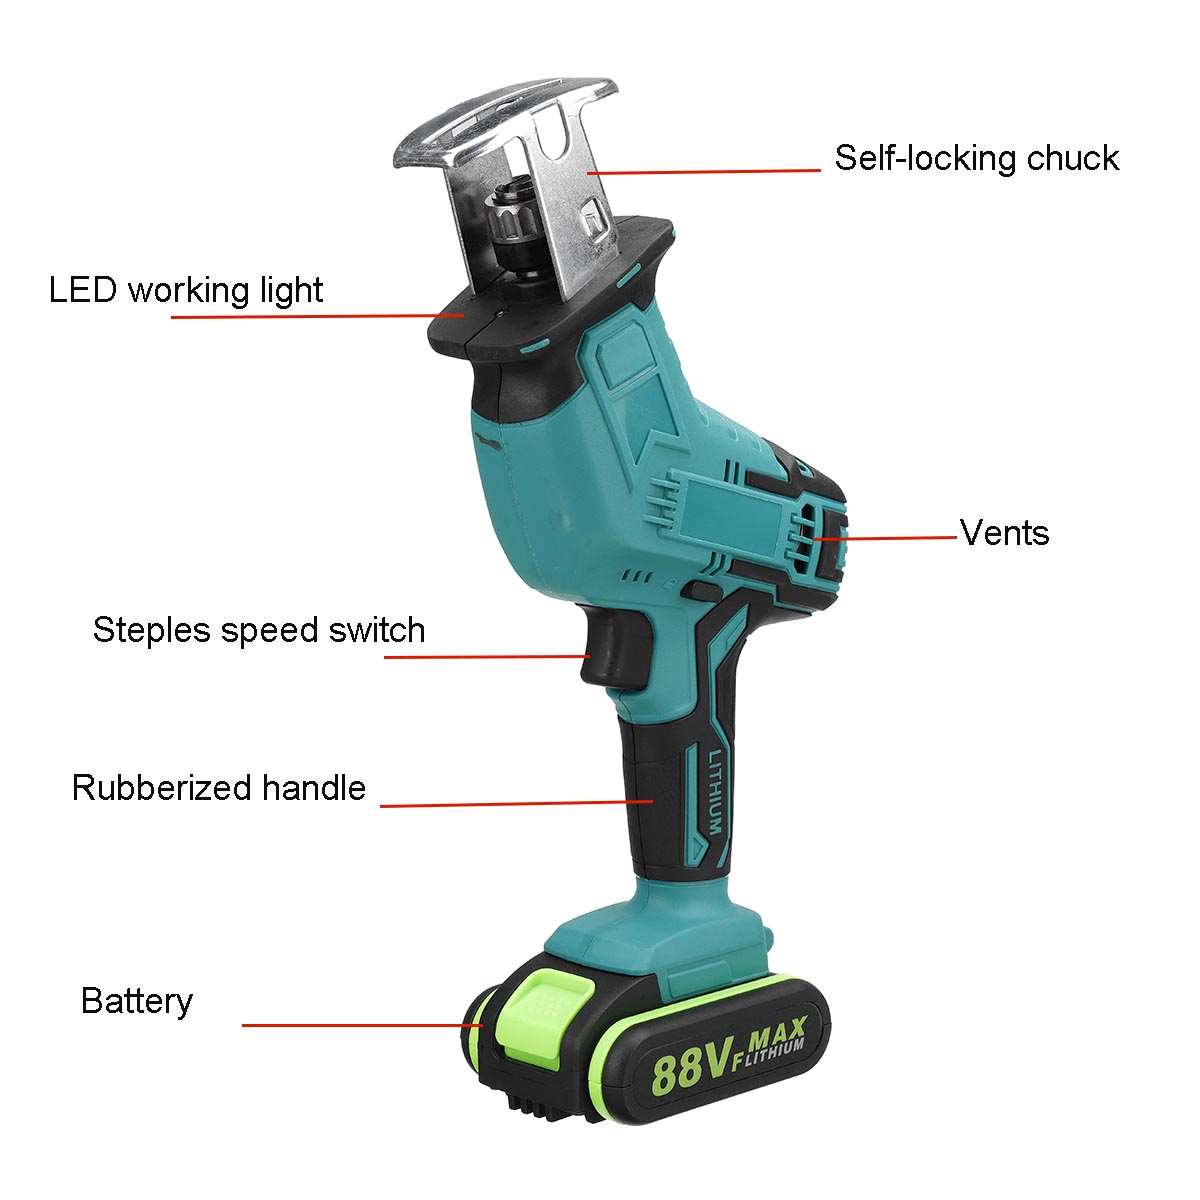 Tools : 88V 7500mAh Battery Cordless Reciprocating Saw Wood Metal Cutting Saw Saber Saw Portable Electric Saw Rechargeable Power Tool